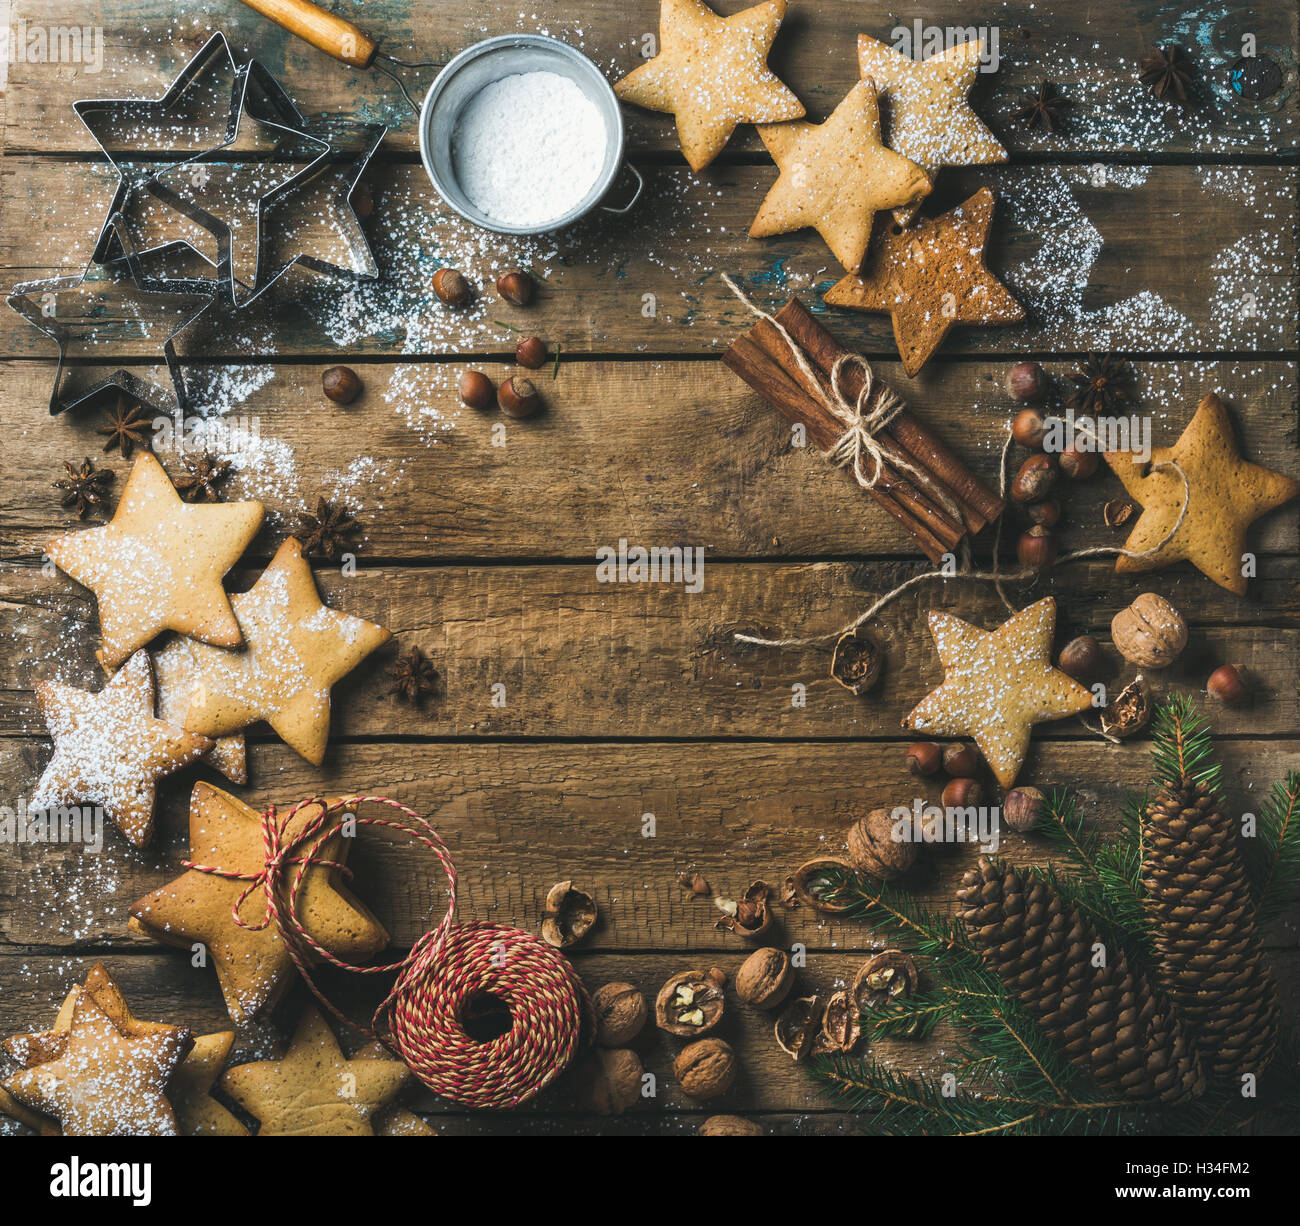 Gingerbread cookies with sugar powder, nuts, spices, fir branch, cones - Stock Image